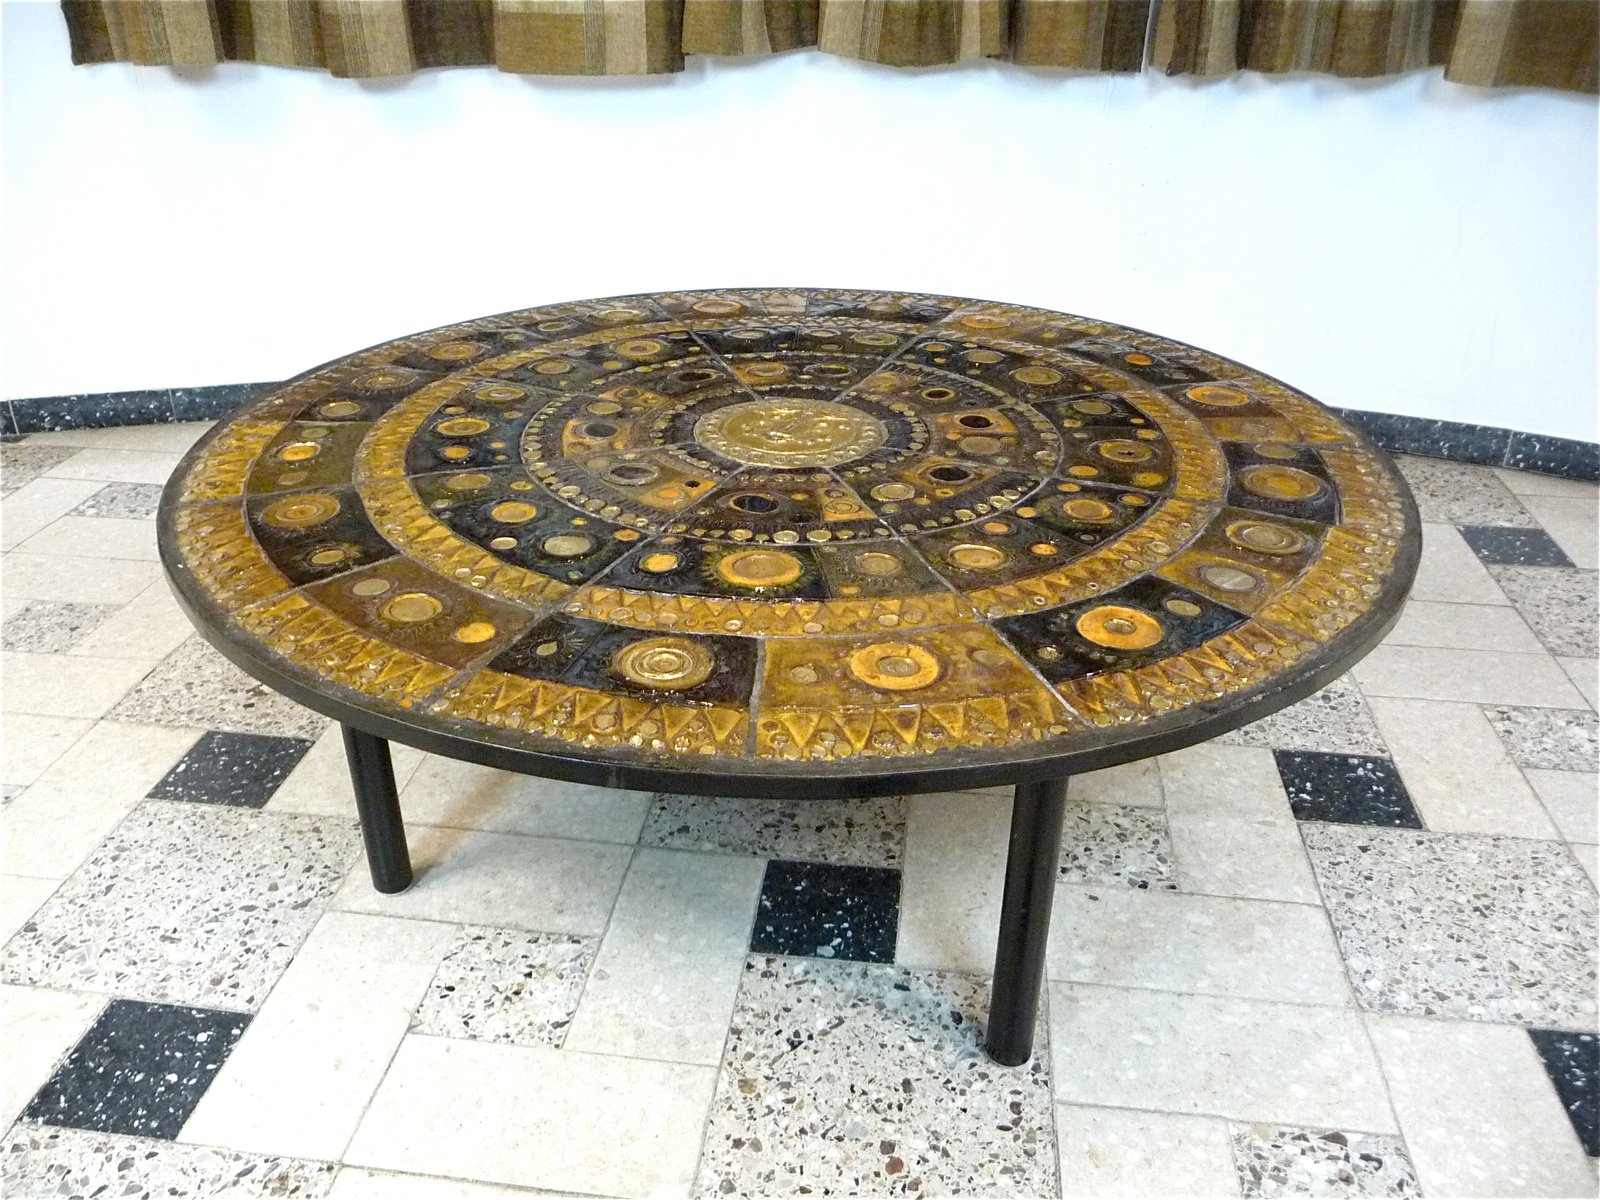 German Ceramic Coffee Table by Renate Rhein 1960s for sale at Pamono